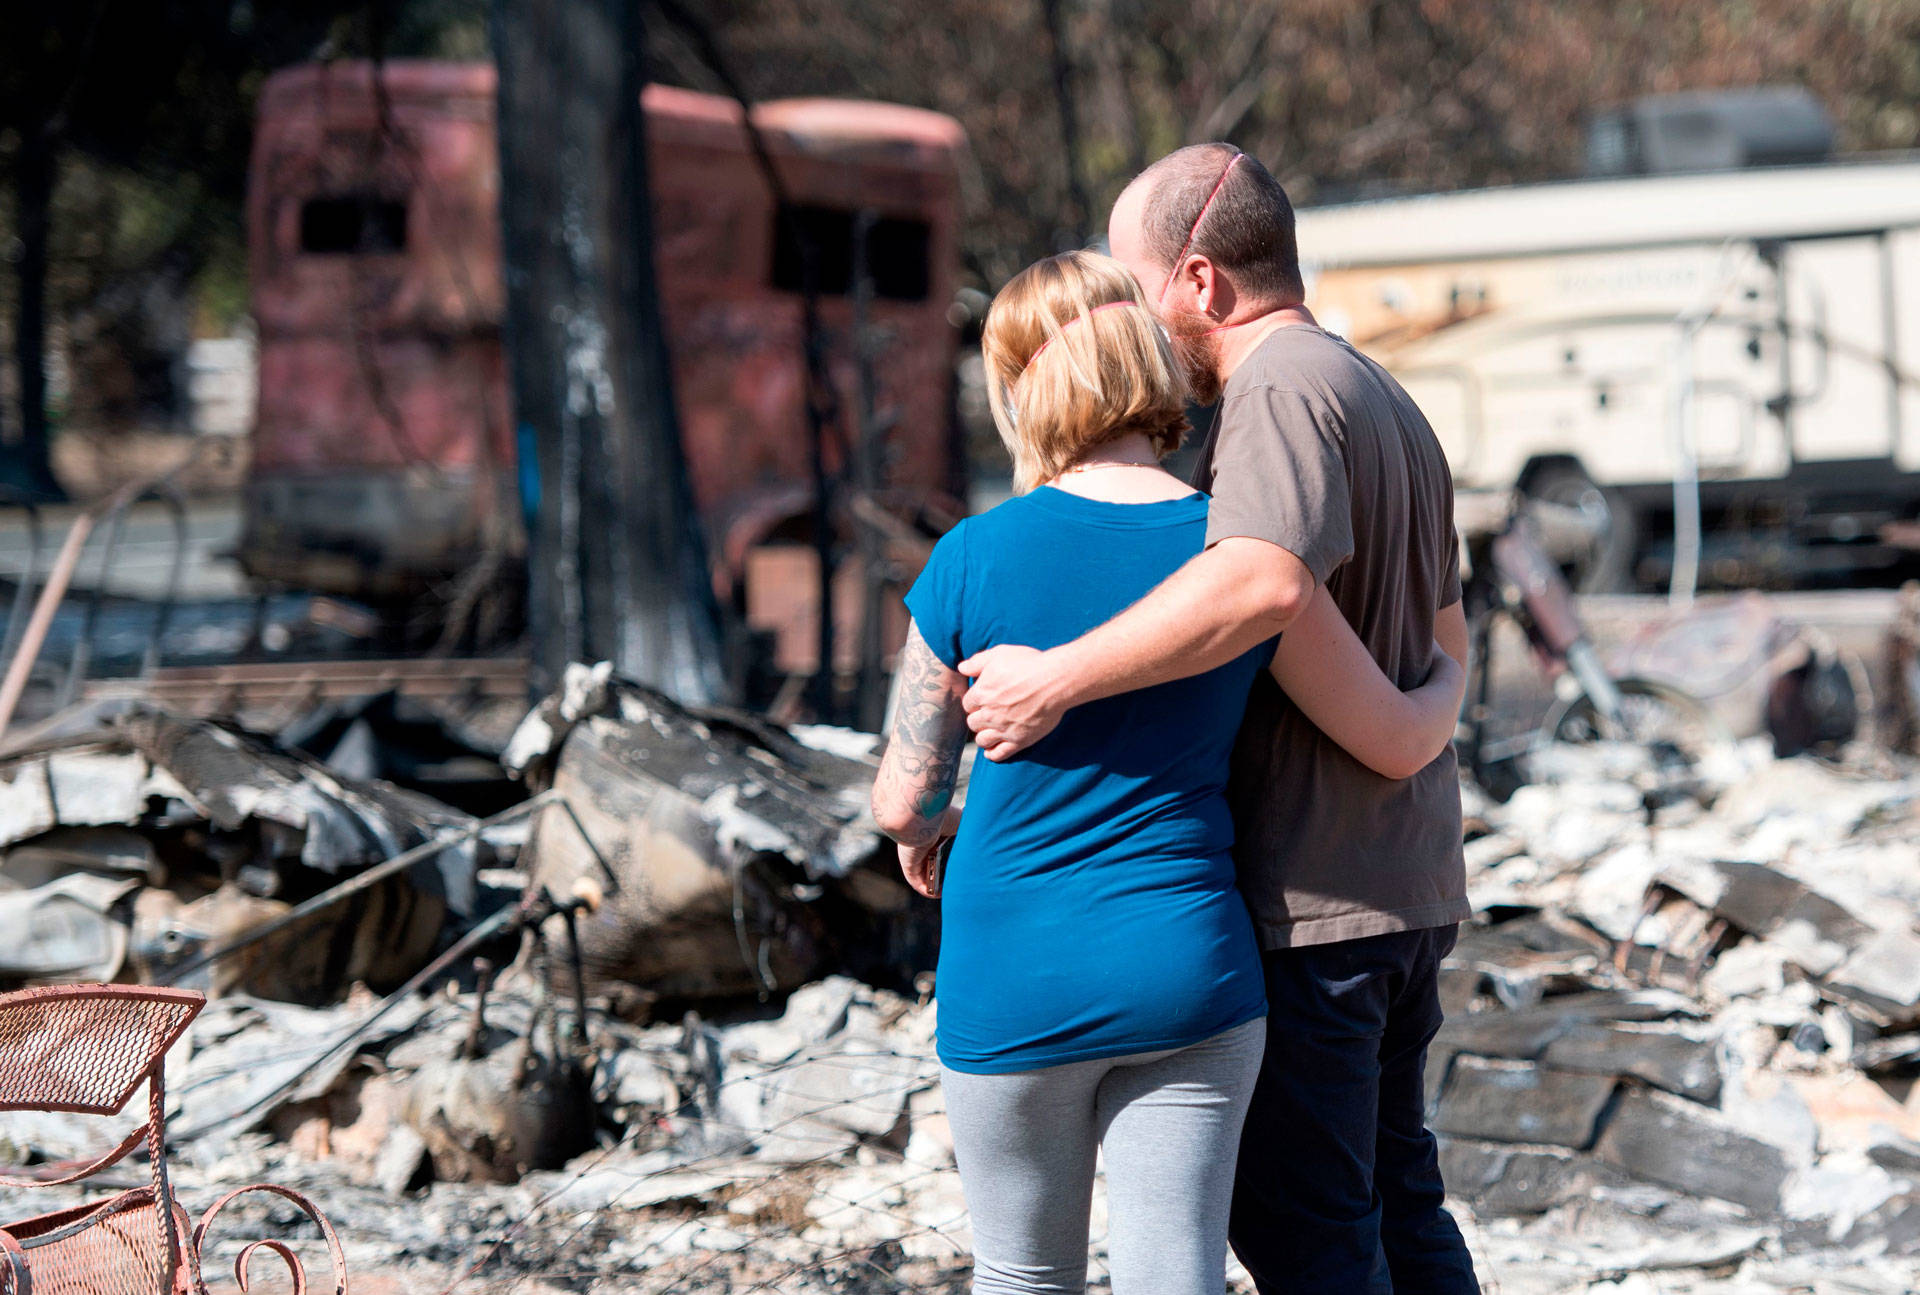 Mandi and Lane Summit embrace in front of their fire-destroyed home in the Mendocino County community of Redwood Valley on Oct. 15, 2017. Cal Fire determined the Redwood Fire started in two locations and was caused by trees or parts of trees falling onto PG&E power lines. JOSH EDELSON/AFP/Getty Images